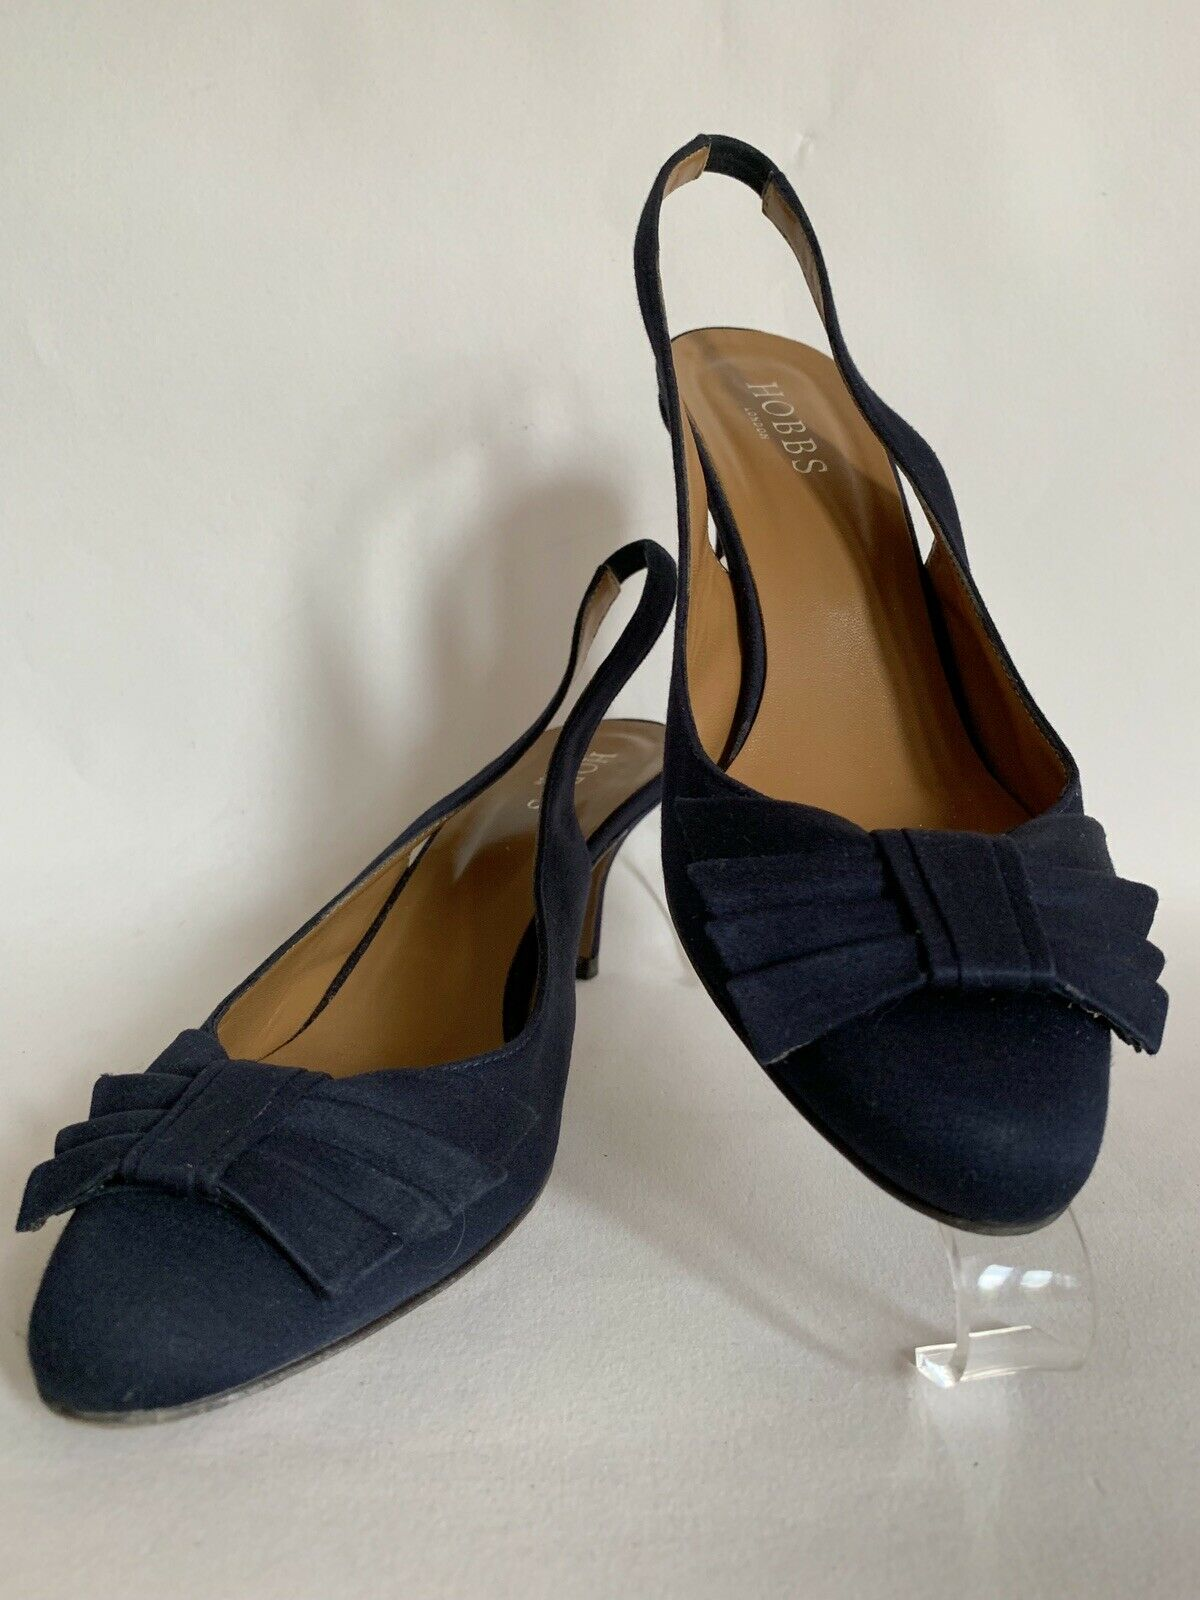 Hobbs Navy bluee Satin Slingback shoes 3  Kitten Heel With Bow Front UK 5 EU 38